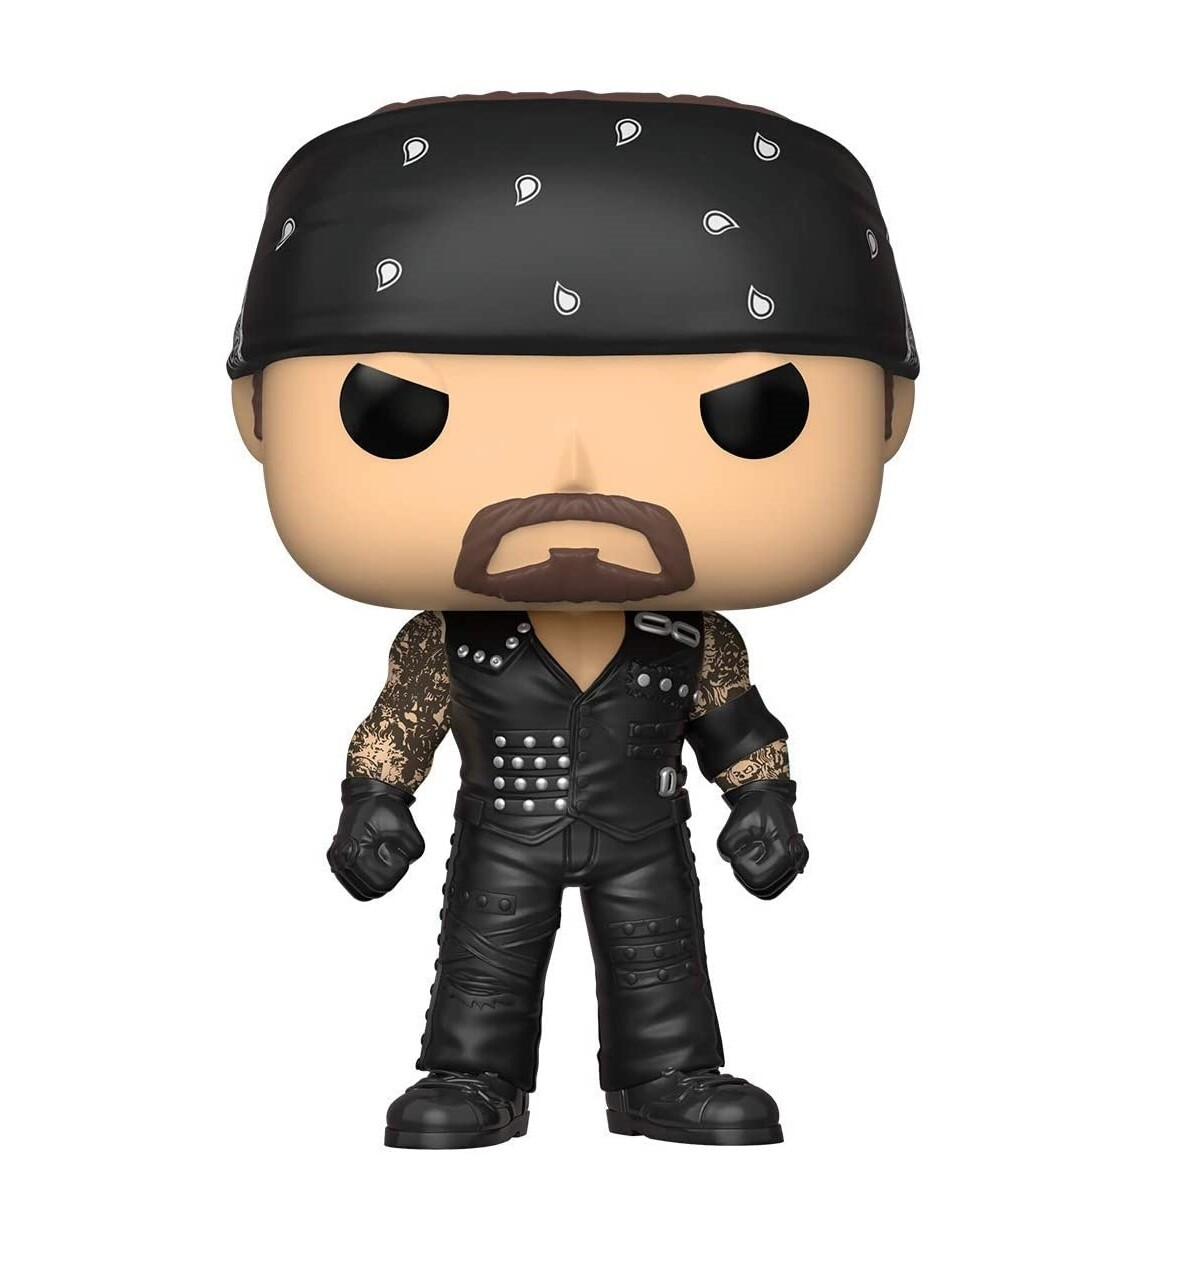 PRE-ORDER WWE: Boneyard Undertaker Exclusive Pop! Vinyl Figure